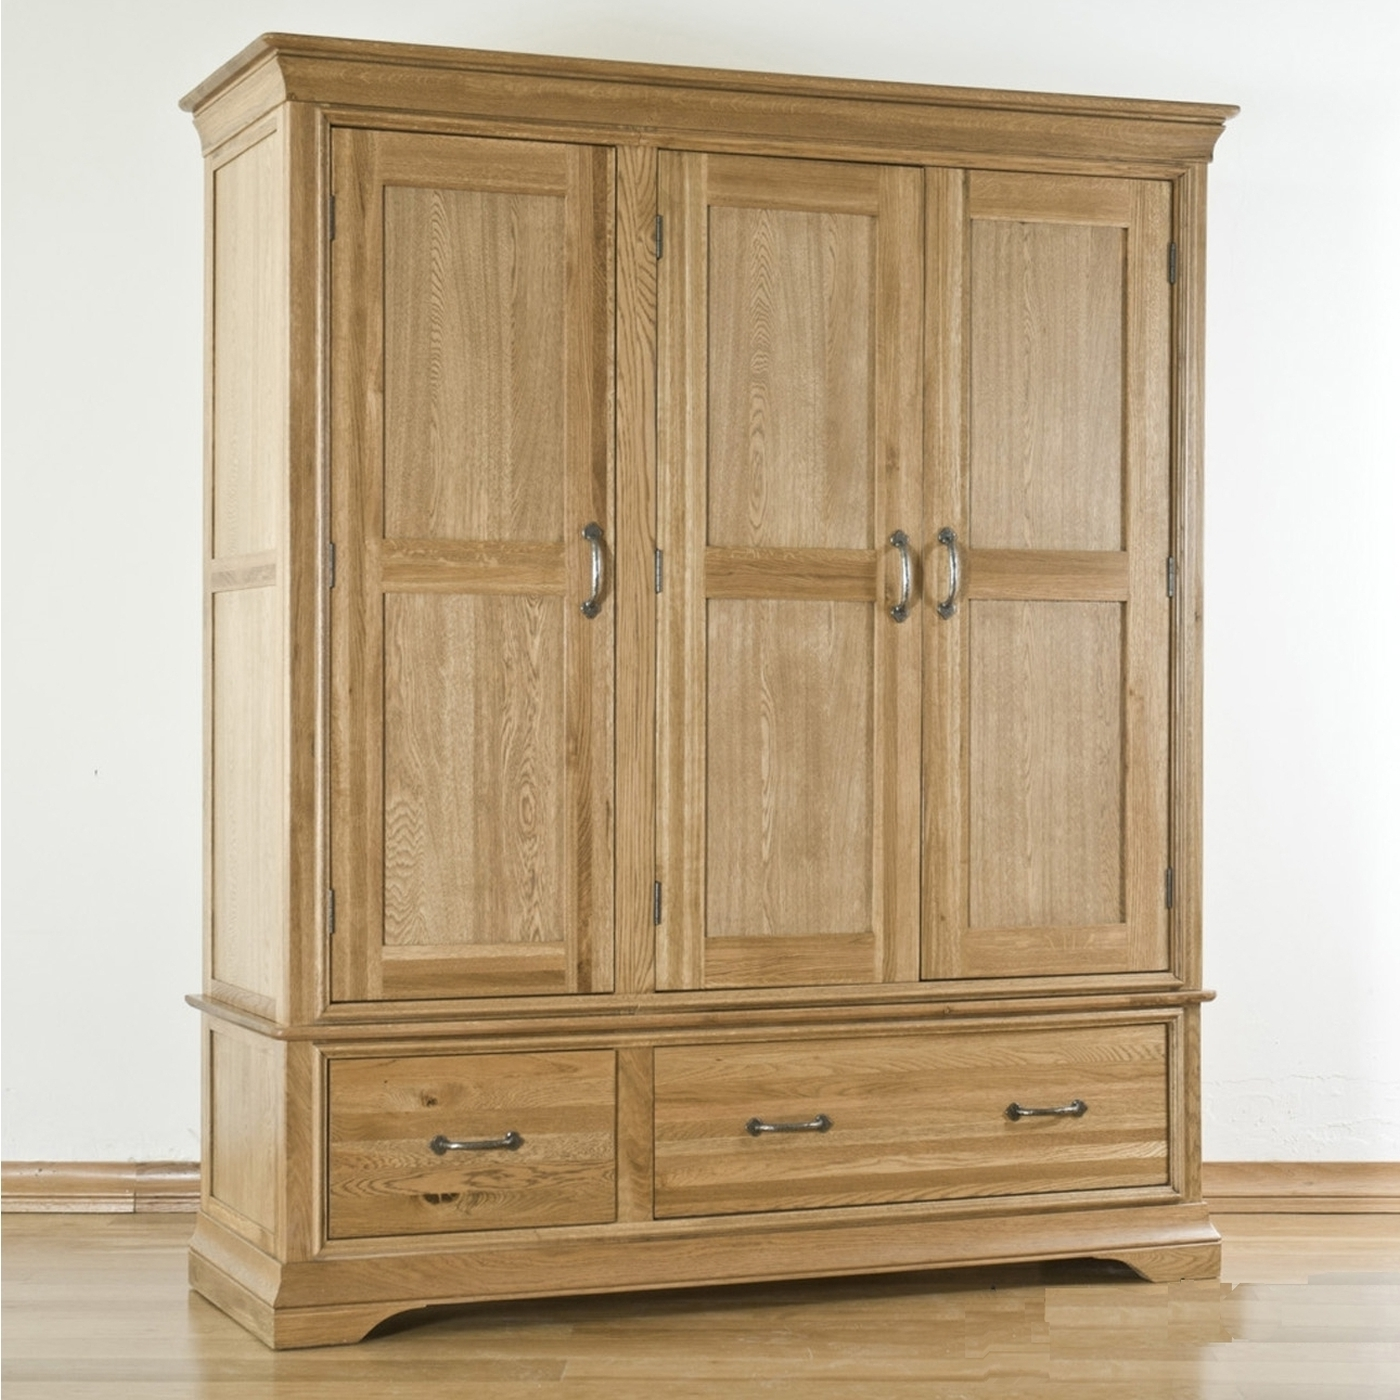 Large Oak Wardrobes Regarding Popular Toulon Solid Oak Furniture Triple Bedroom Large Storage Wardrobe (View 13 of 15)